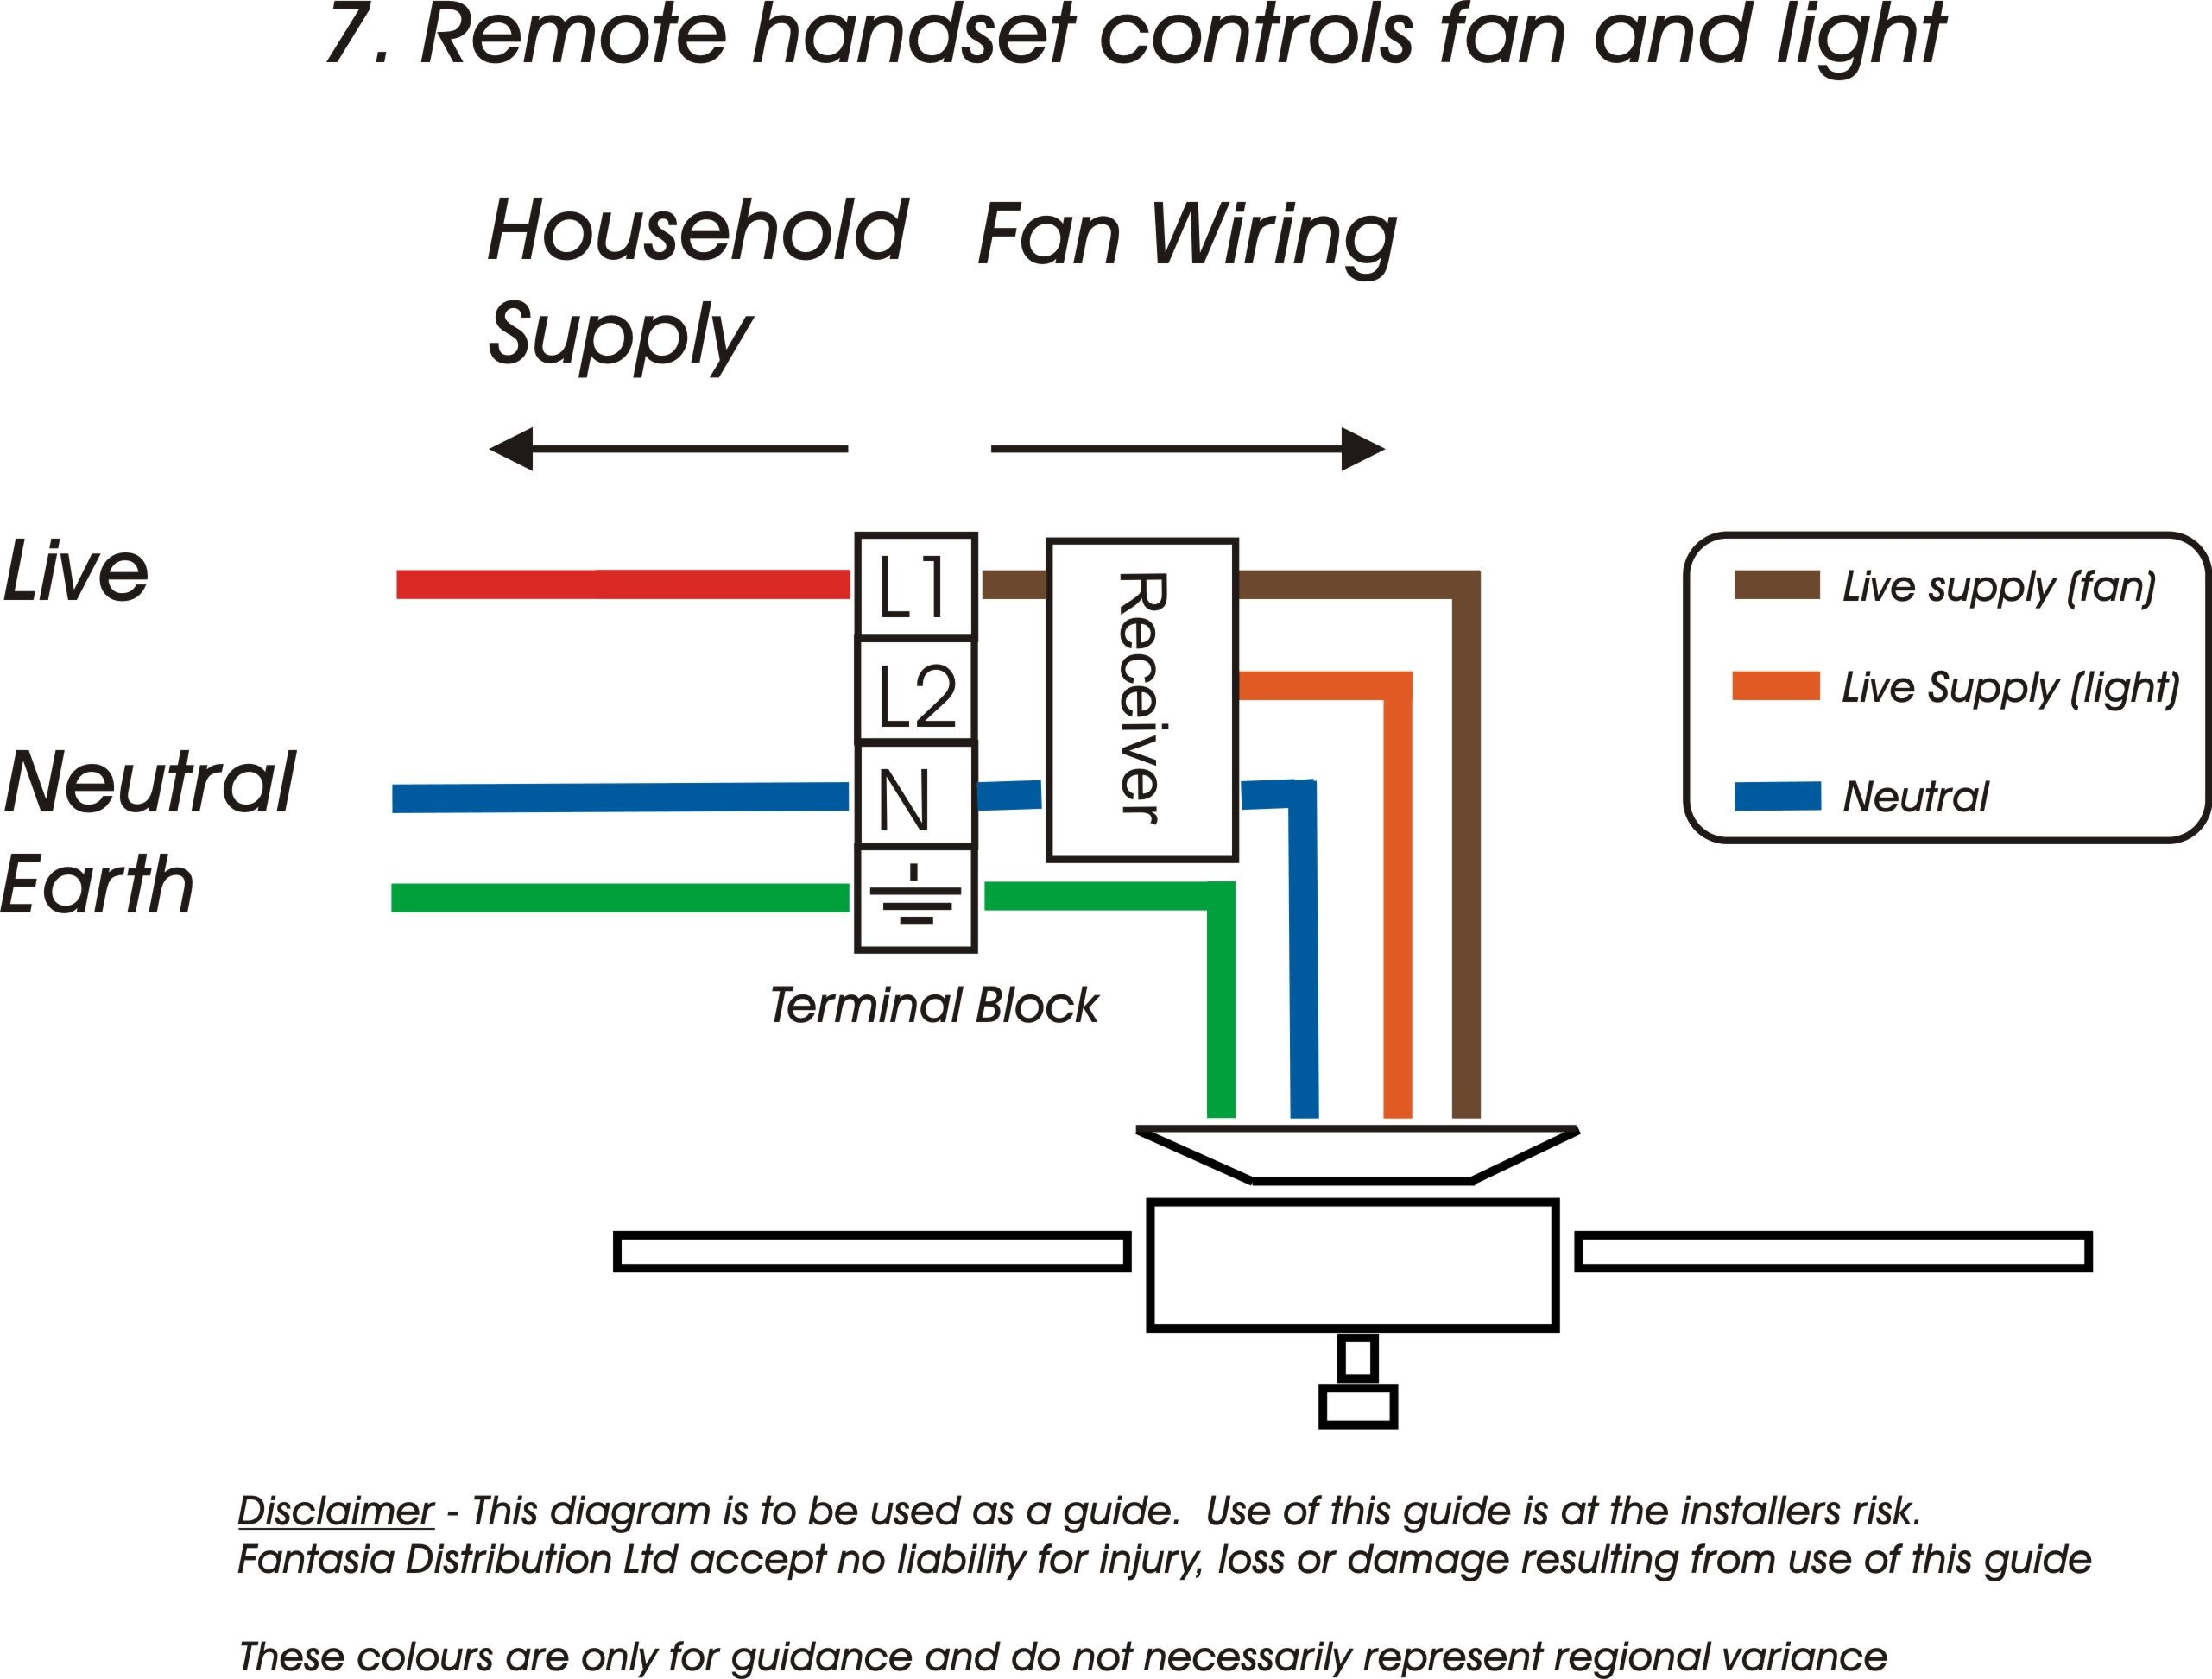 casablanca ceiling fan wiring diagram Collection-Wiring Diagram For Casablanca Ceiling Fan Fresh Wire Ceiling Fan Remote Patrofiloclub 20-n